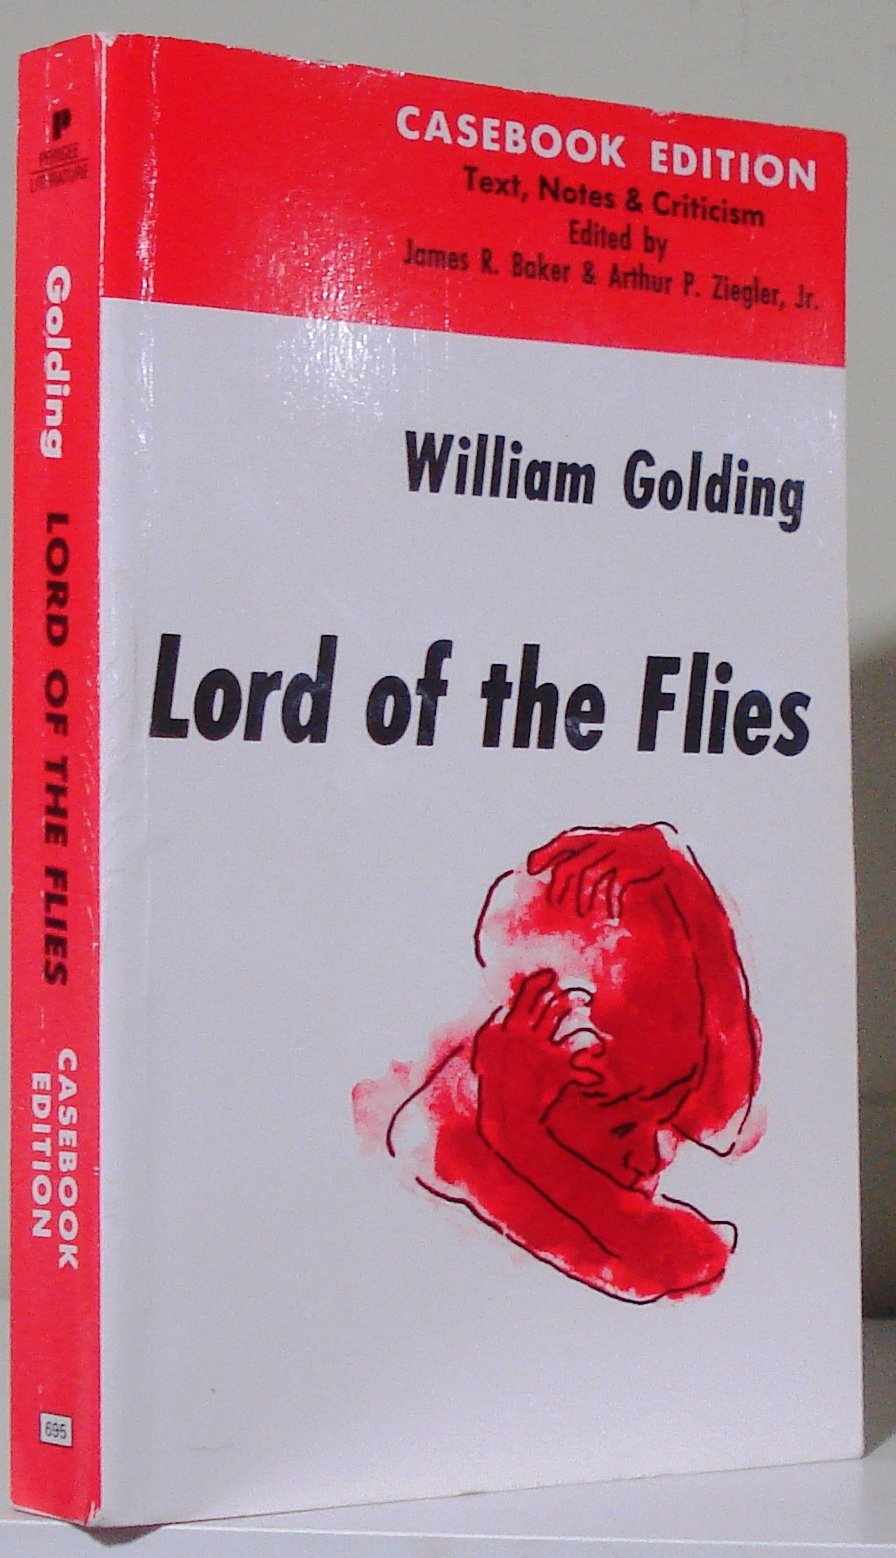 lord of the flies publisher perigee trade casebook ed edition lord of the flies publisher perigee trade casebook ed edition william golding com books